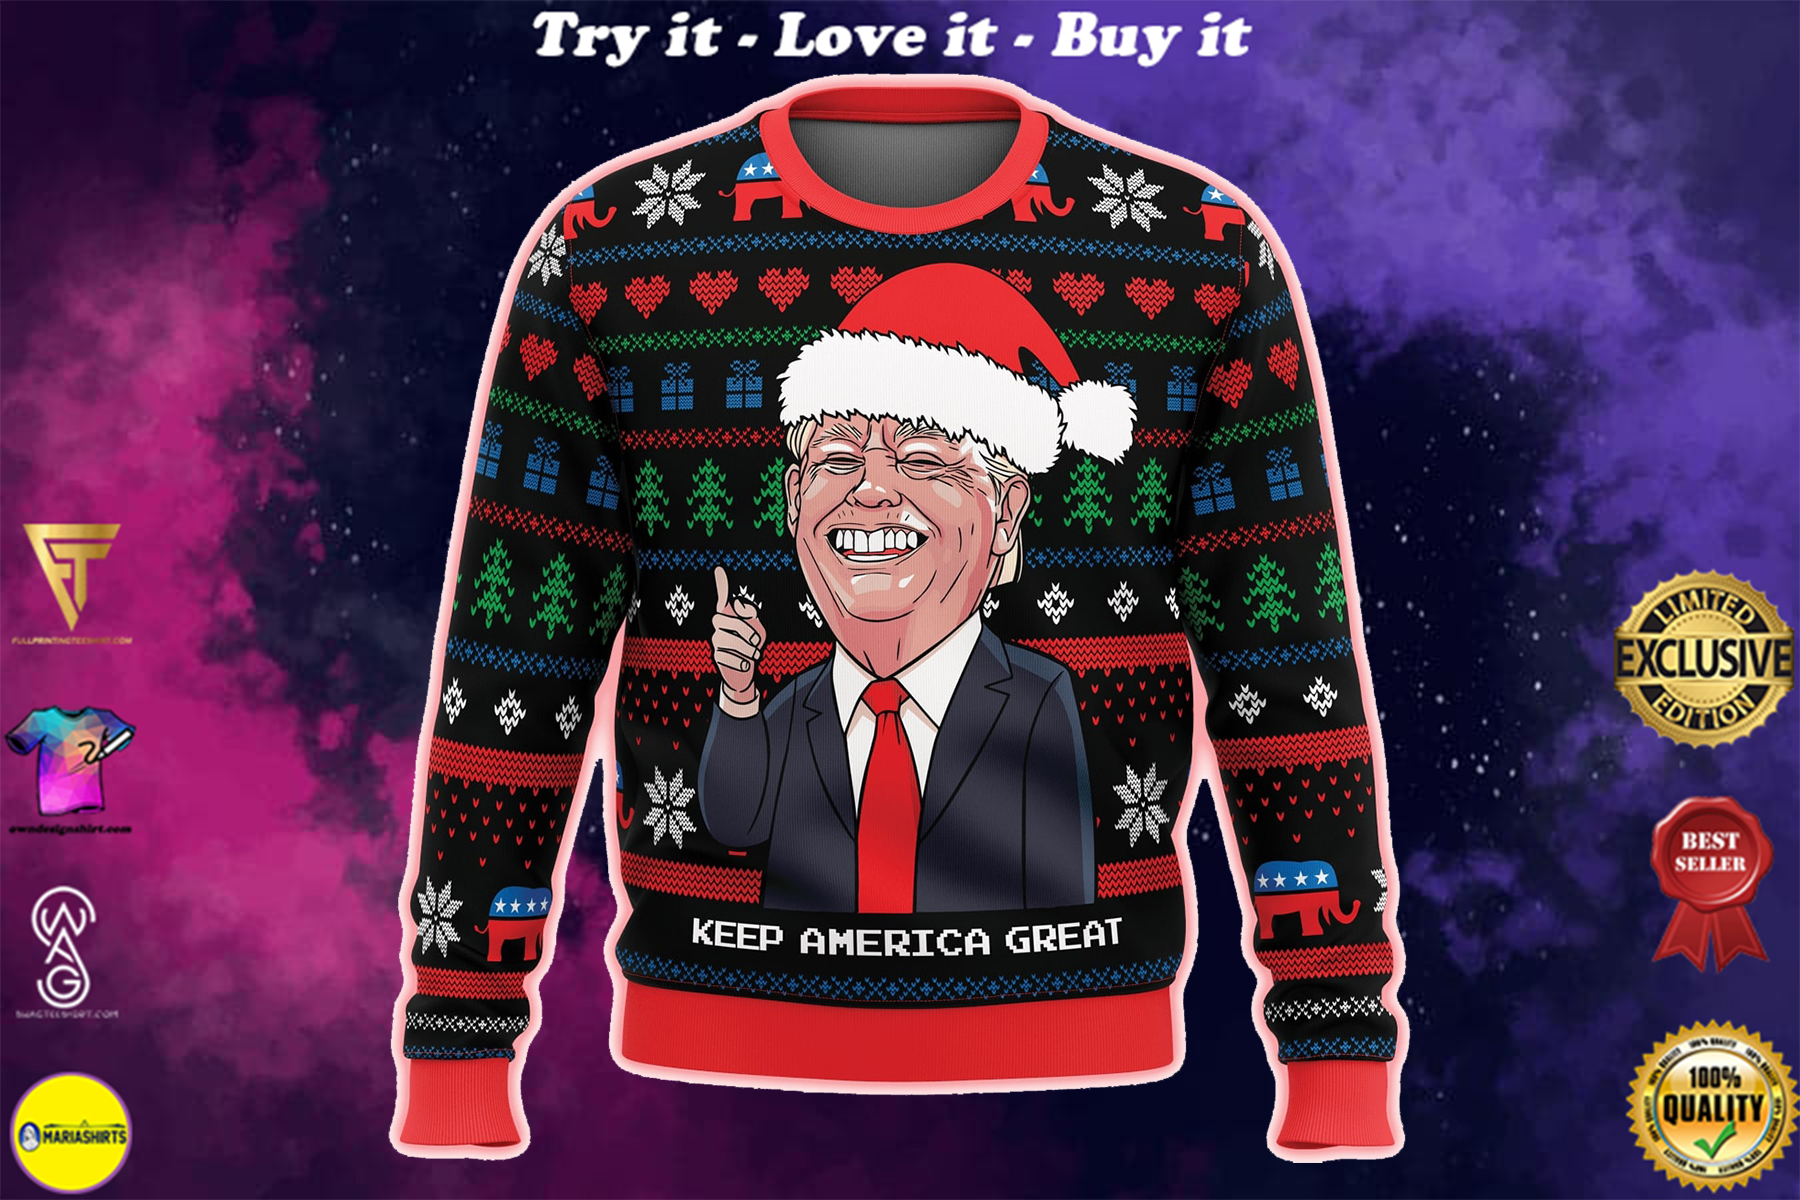 [special edition] keep america great all over printed ugly christmas sweater - maria